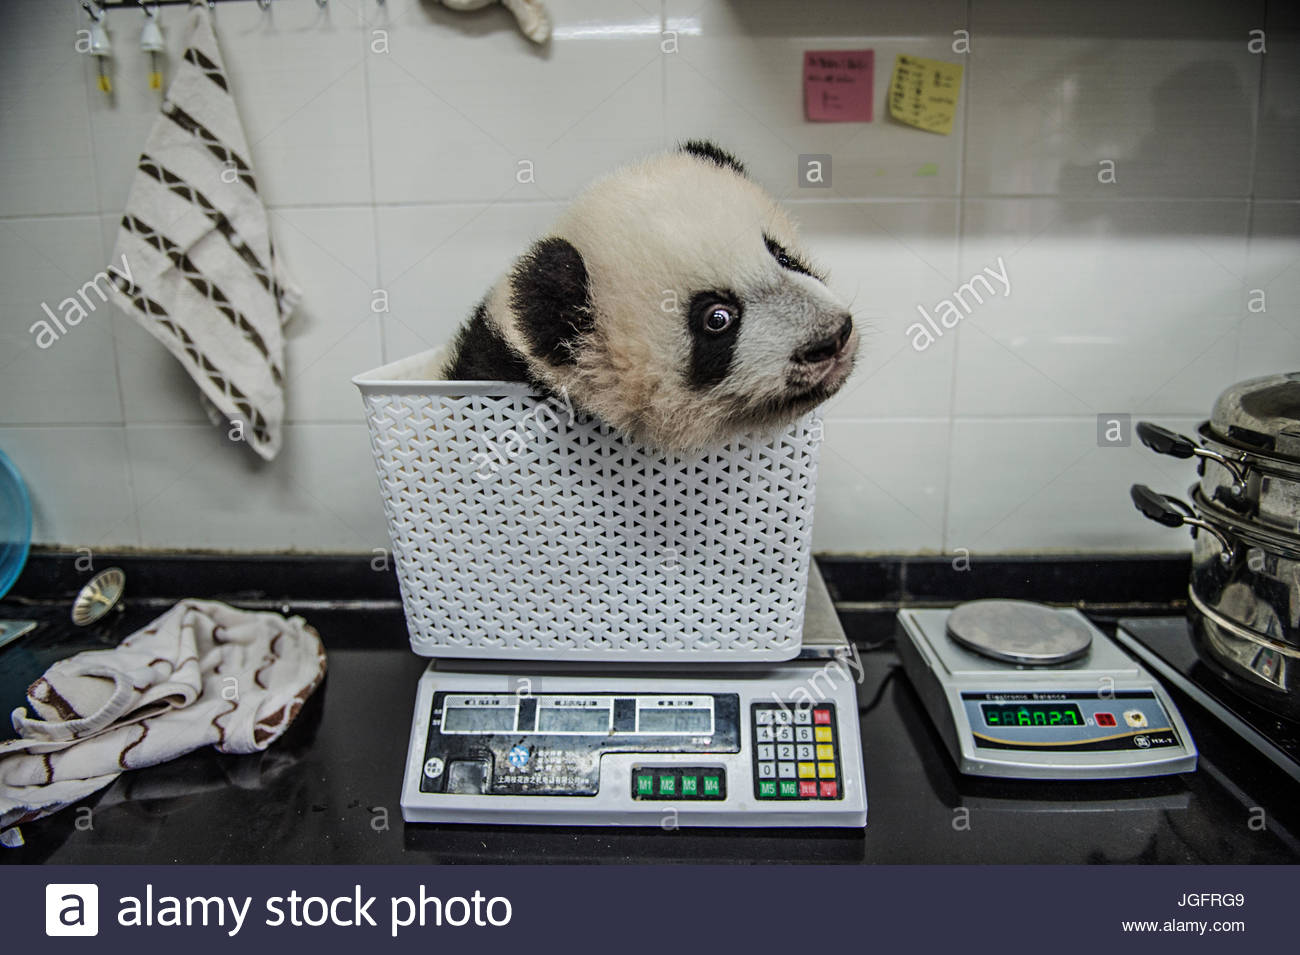 A giant panda cub gets weighed at Bifengxia Giant Panda Breeding and Research Center. - Stock Image